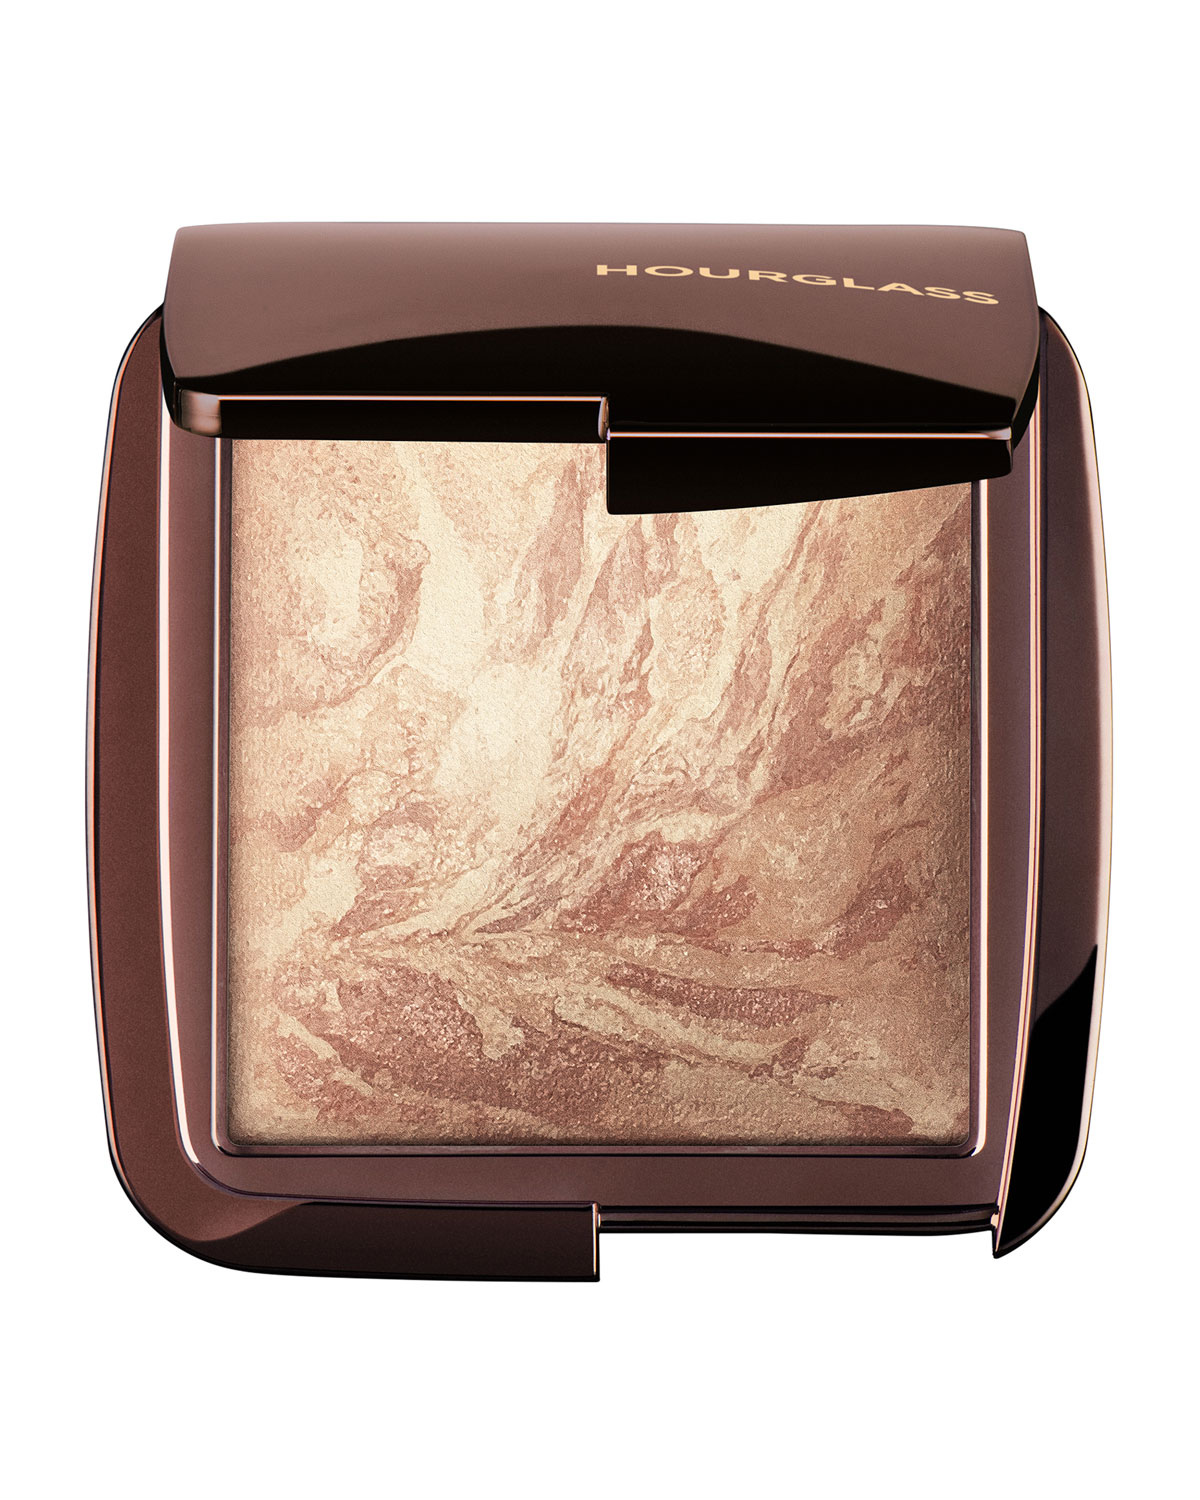 Hourglass Cosmetics Ambient Lighting Infinity Powder